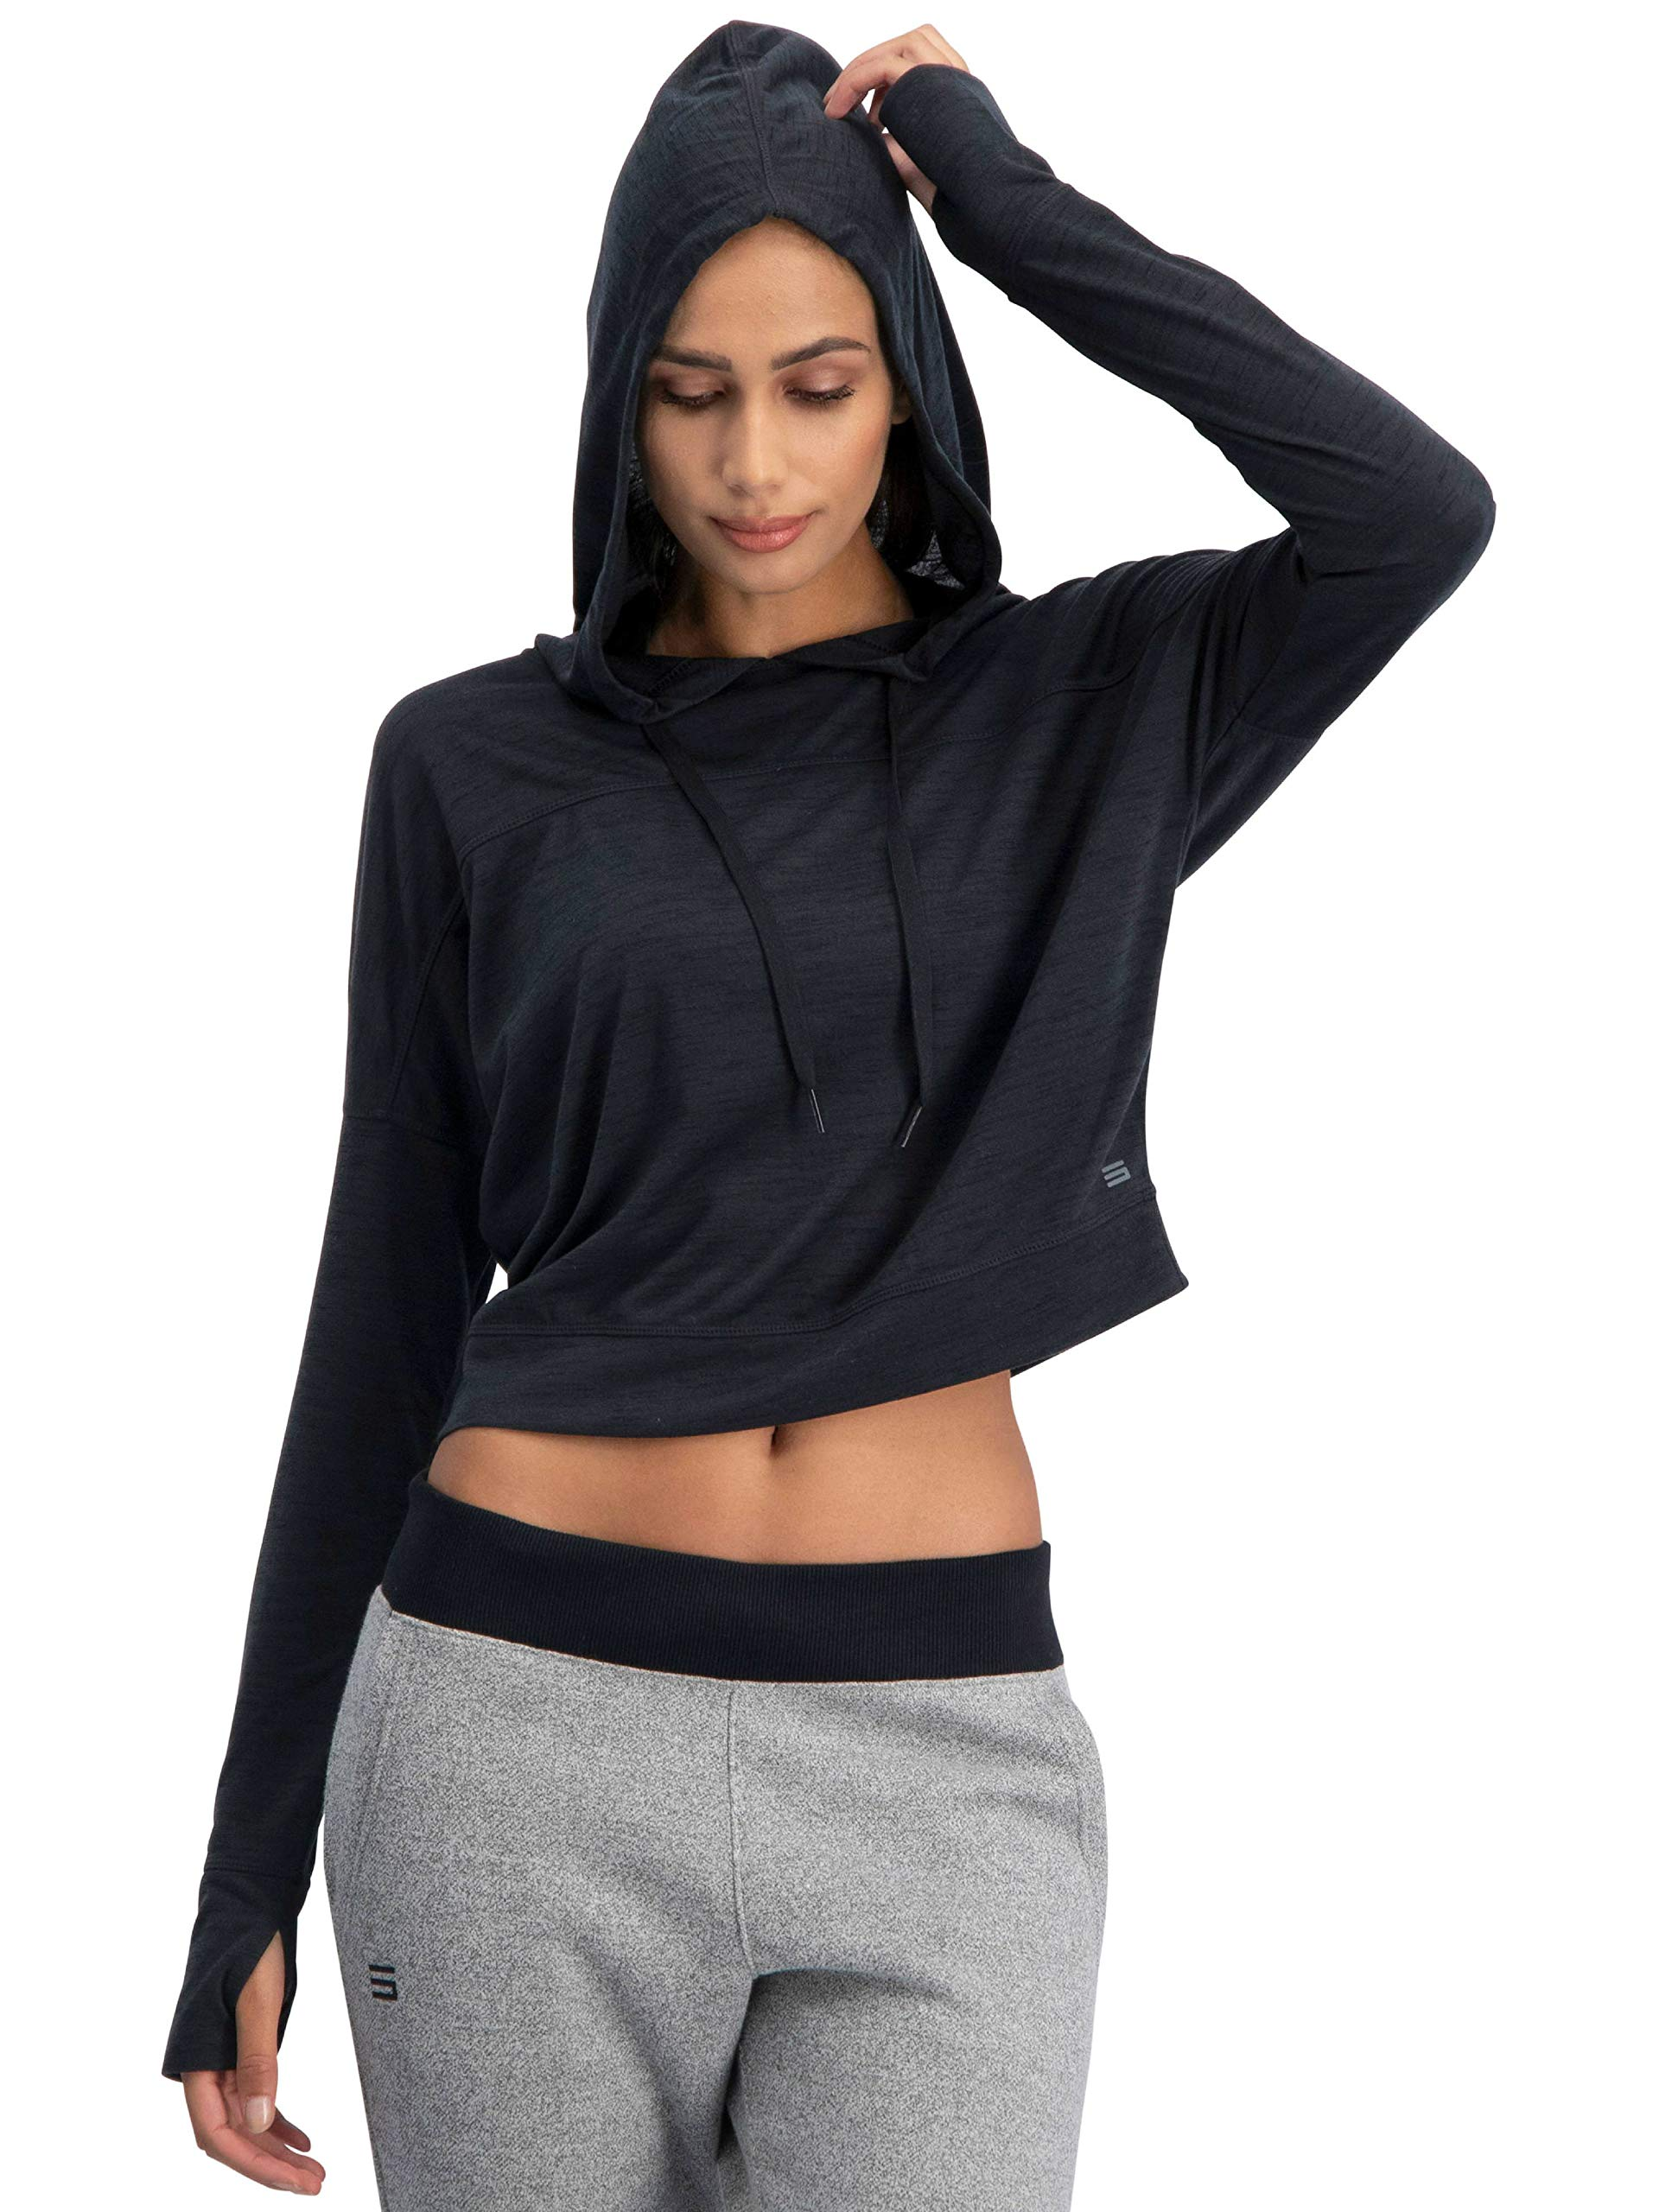 Three Sixty Six Dry Fit Crop Tops for Women - Long Sleeve Crop Top Hoodie - Women's Workout Pullover Top with Thumb Holes